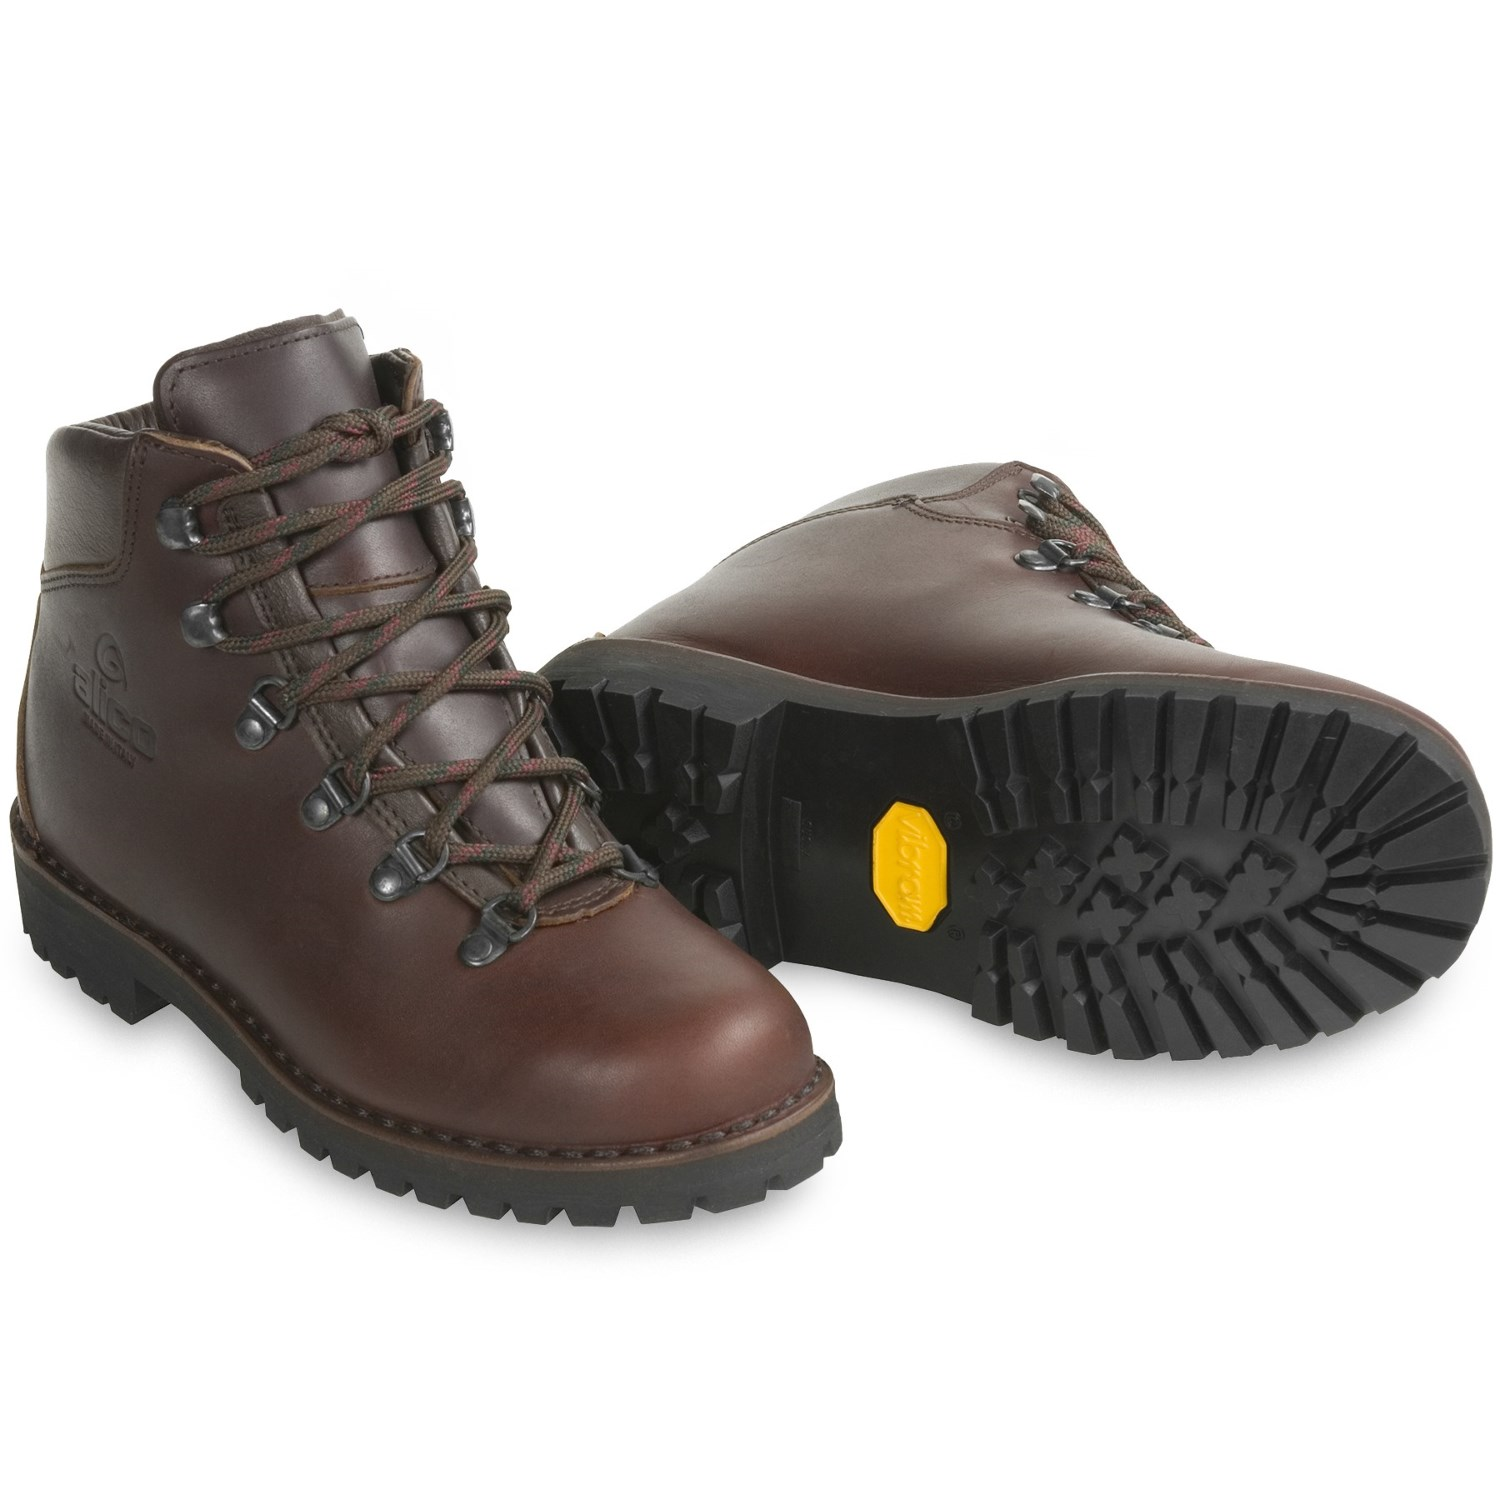 High Top Outdoor Hiking Shoes for Women BROWN